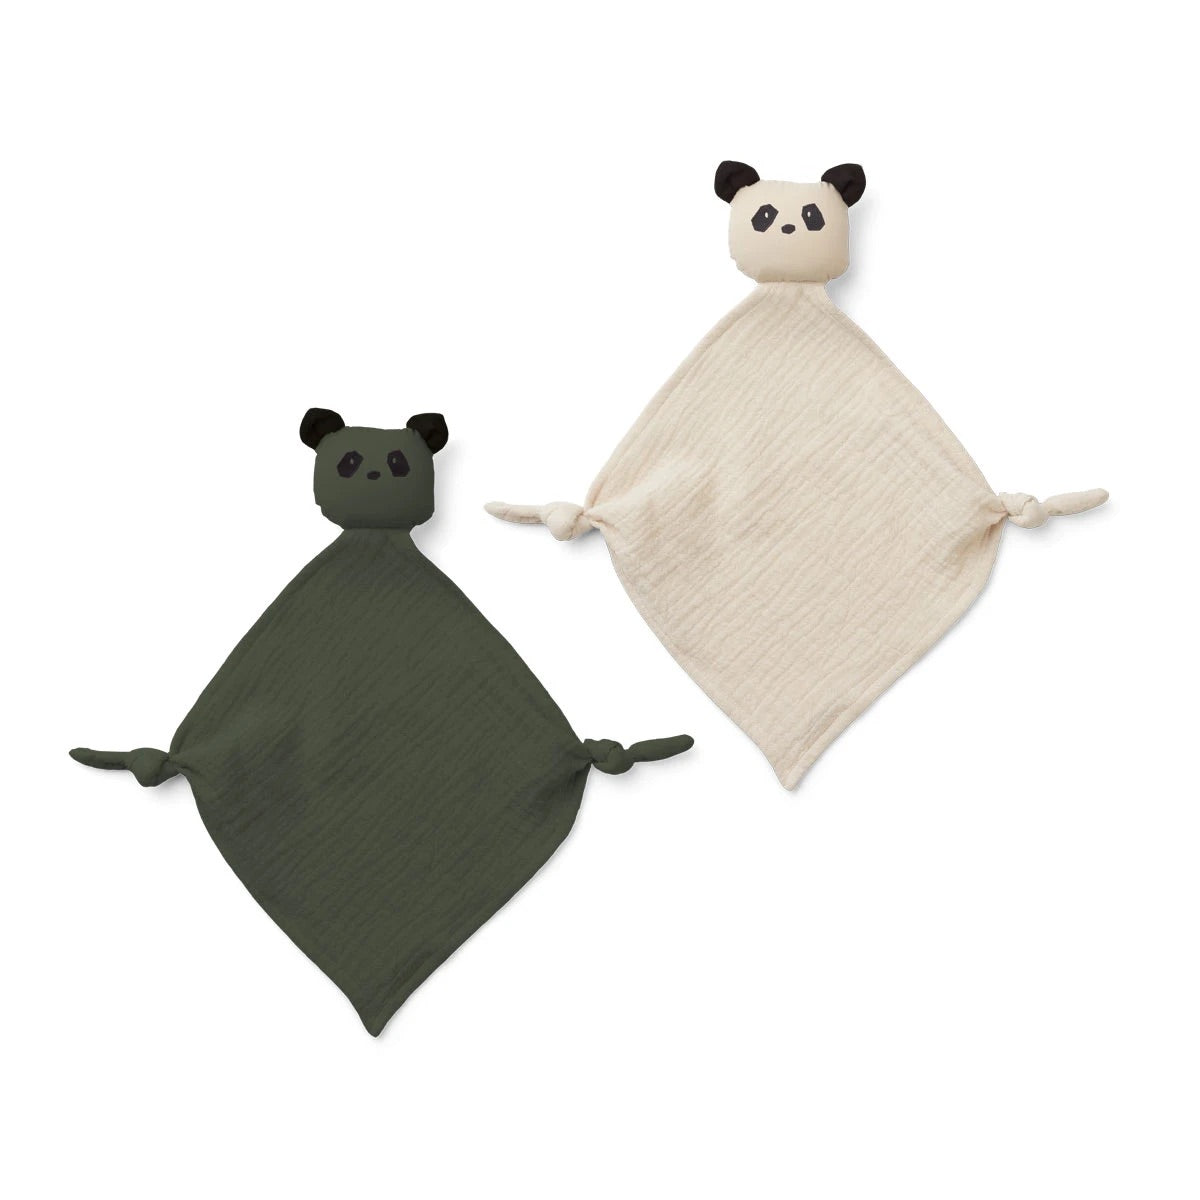 yoko mini cuddle cloth / 2pack - panda hunter green/sandy mix